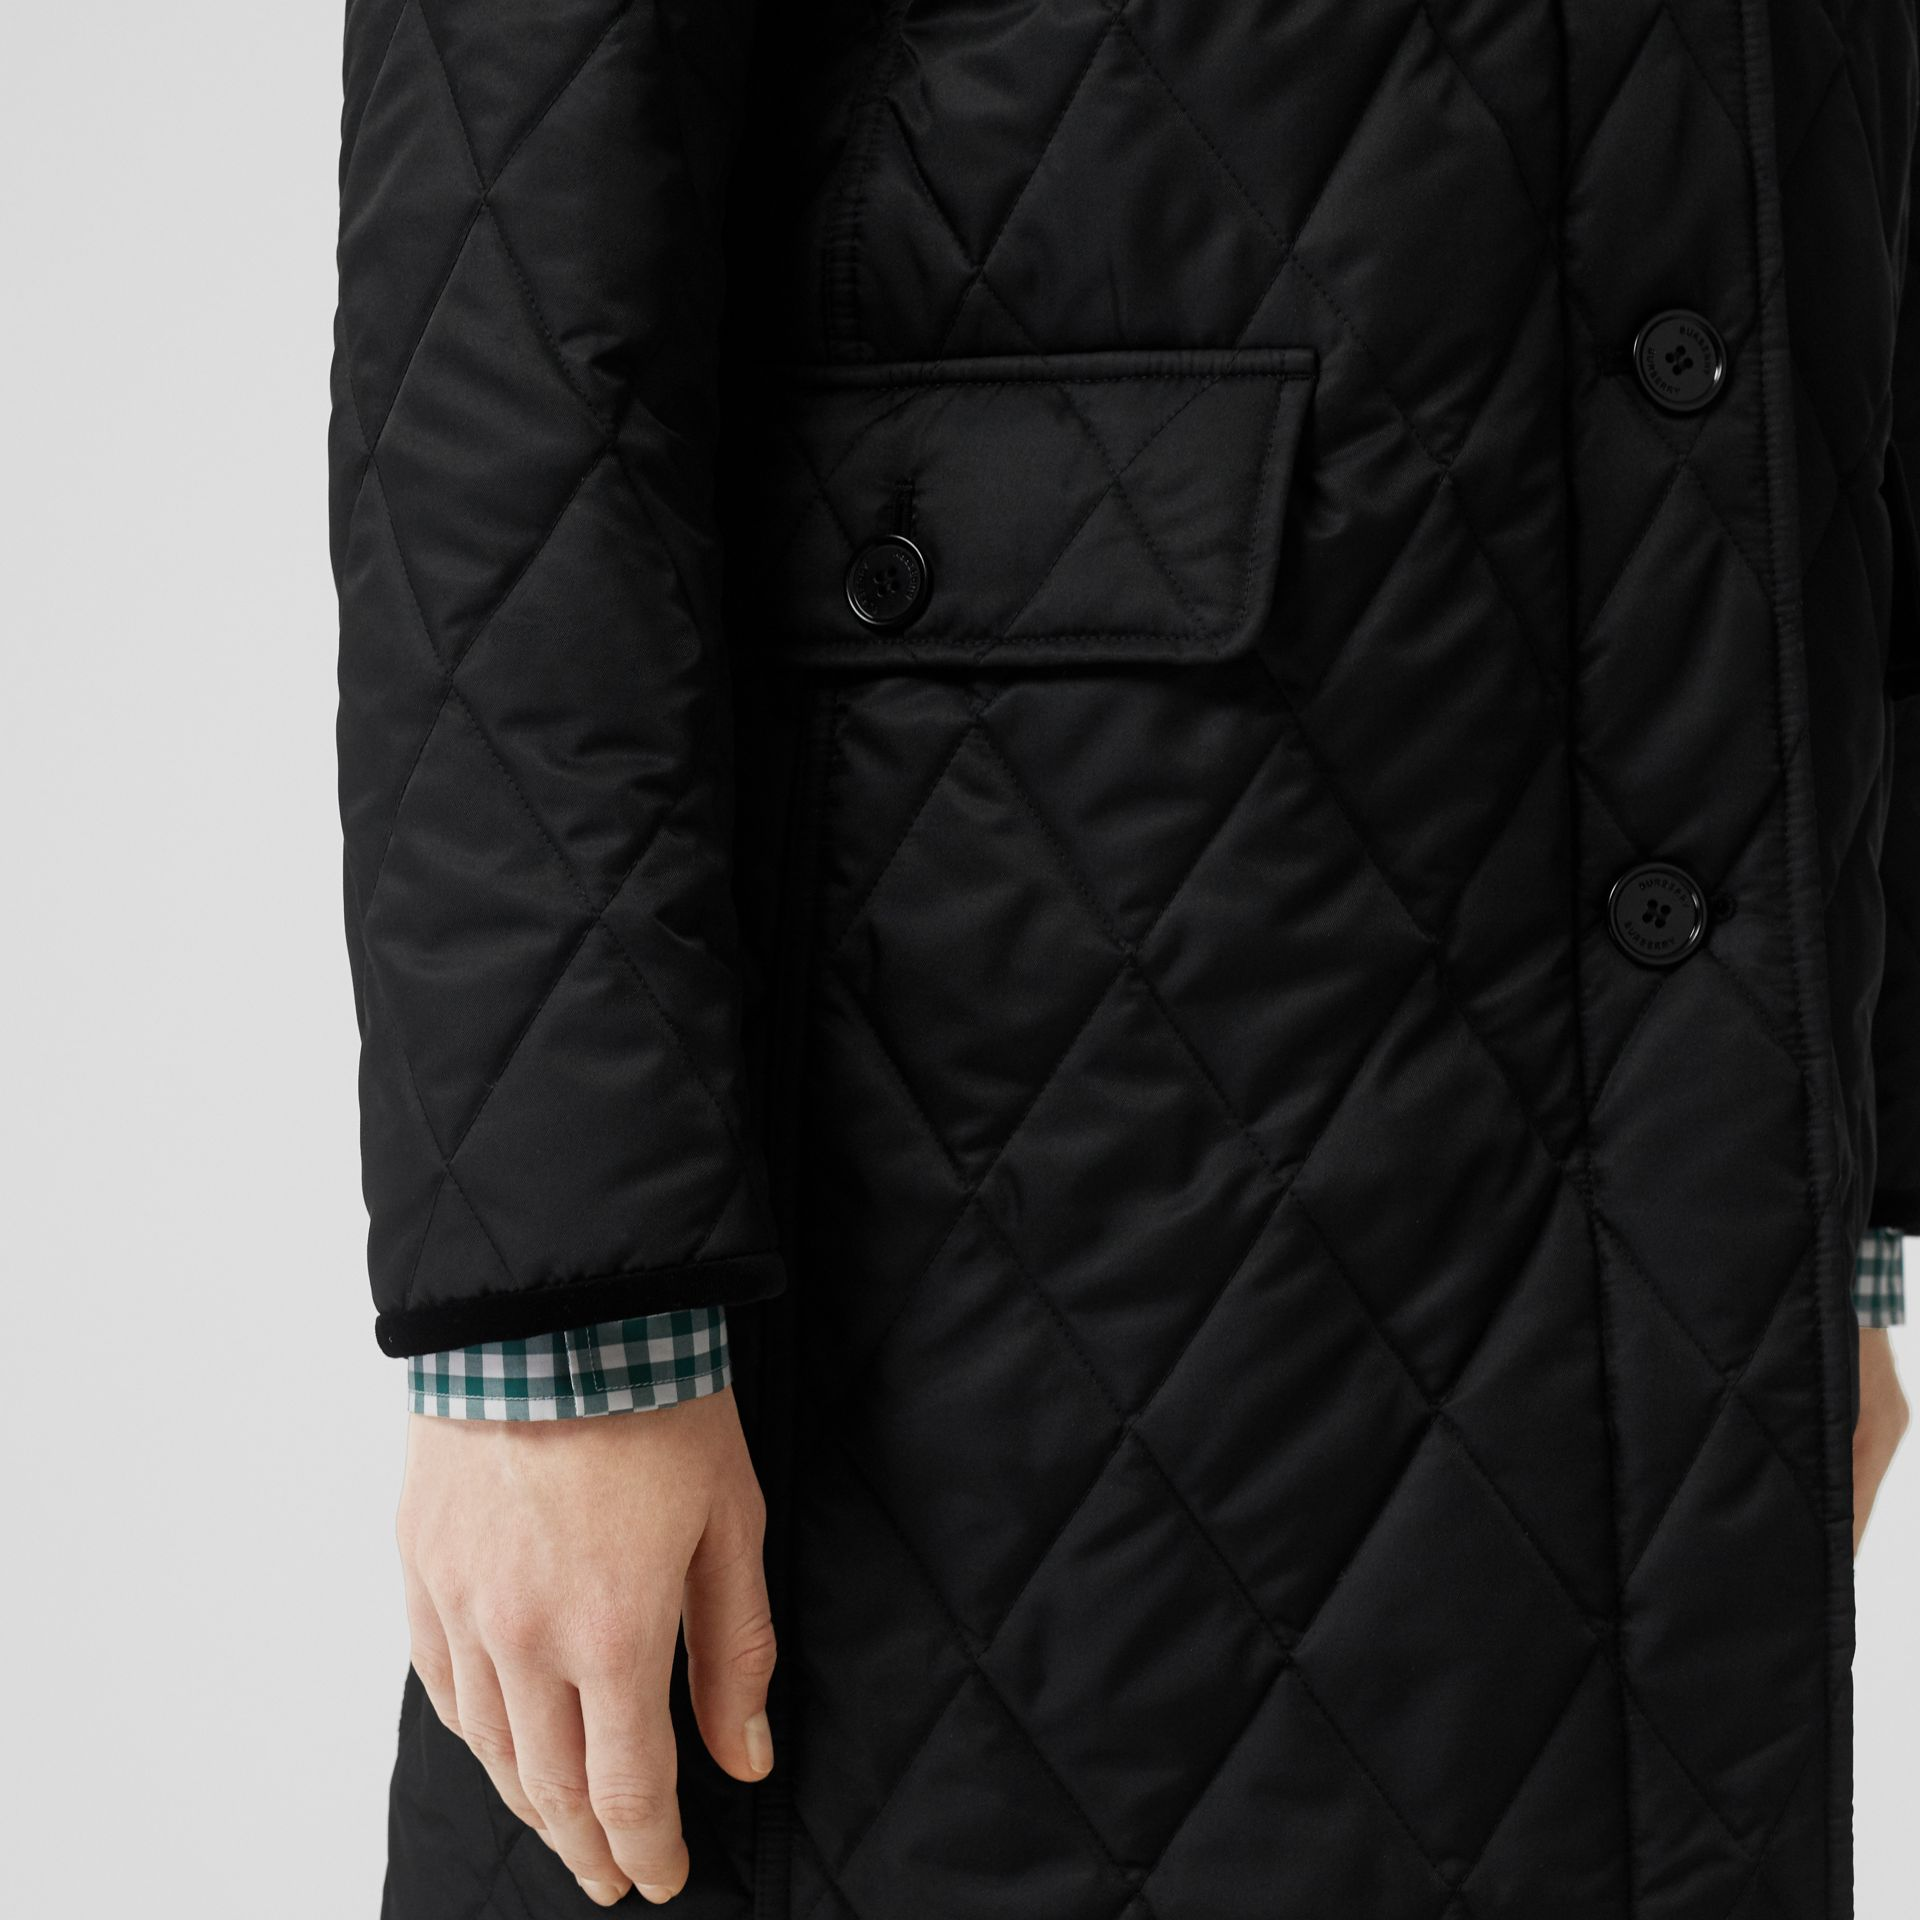 Detachable Hood Monogram Motif Quilted Coat in Black - Women | Burberry Australia - gallery image 4